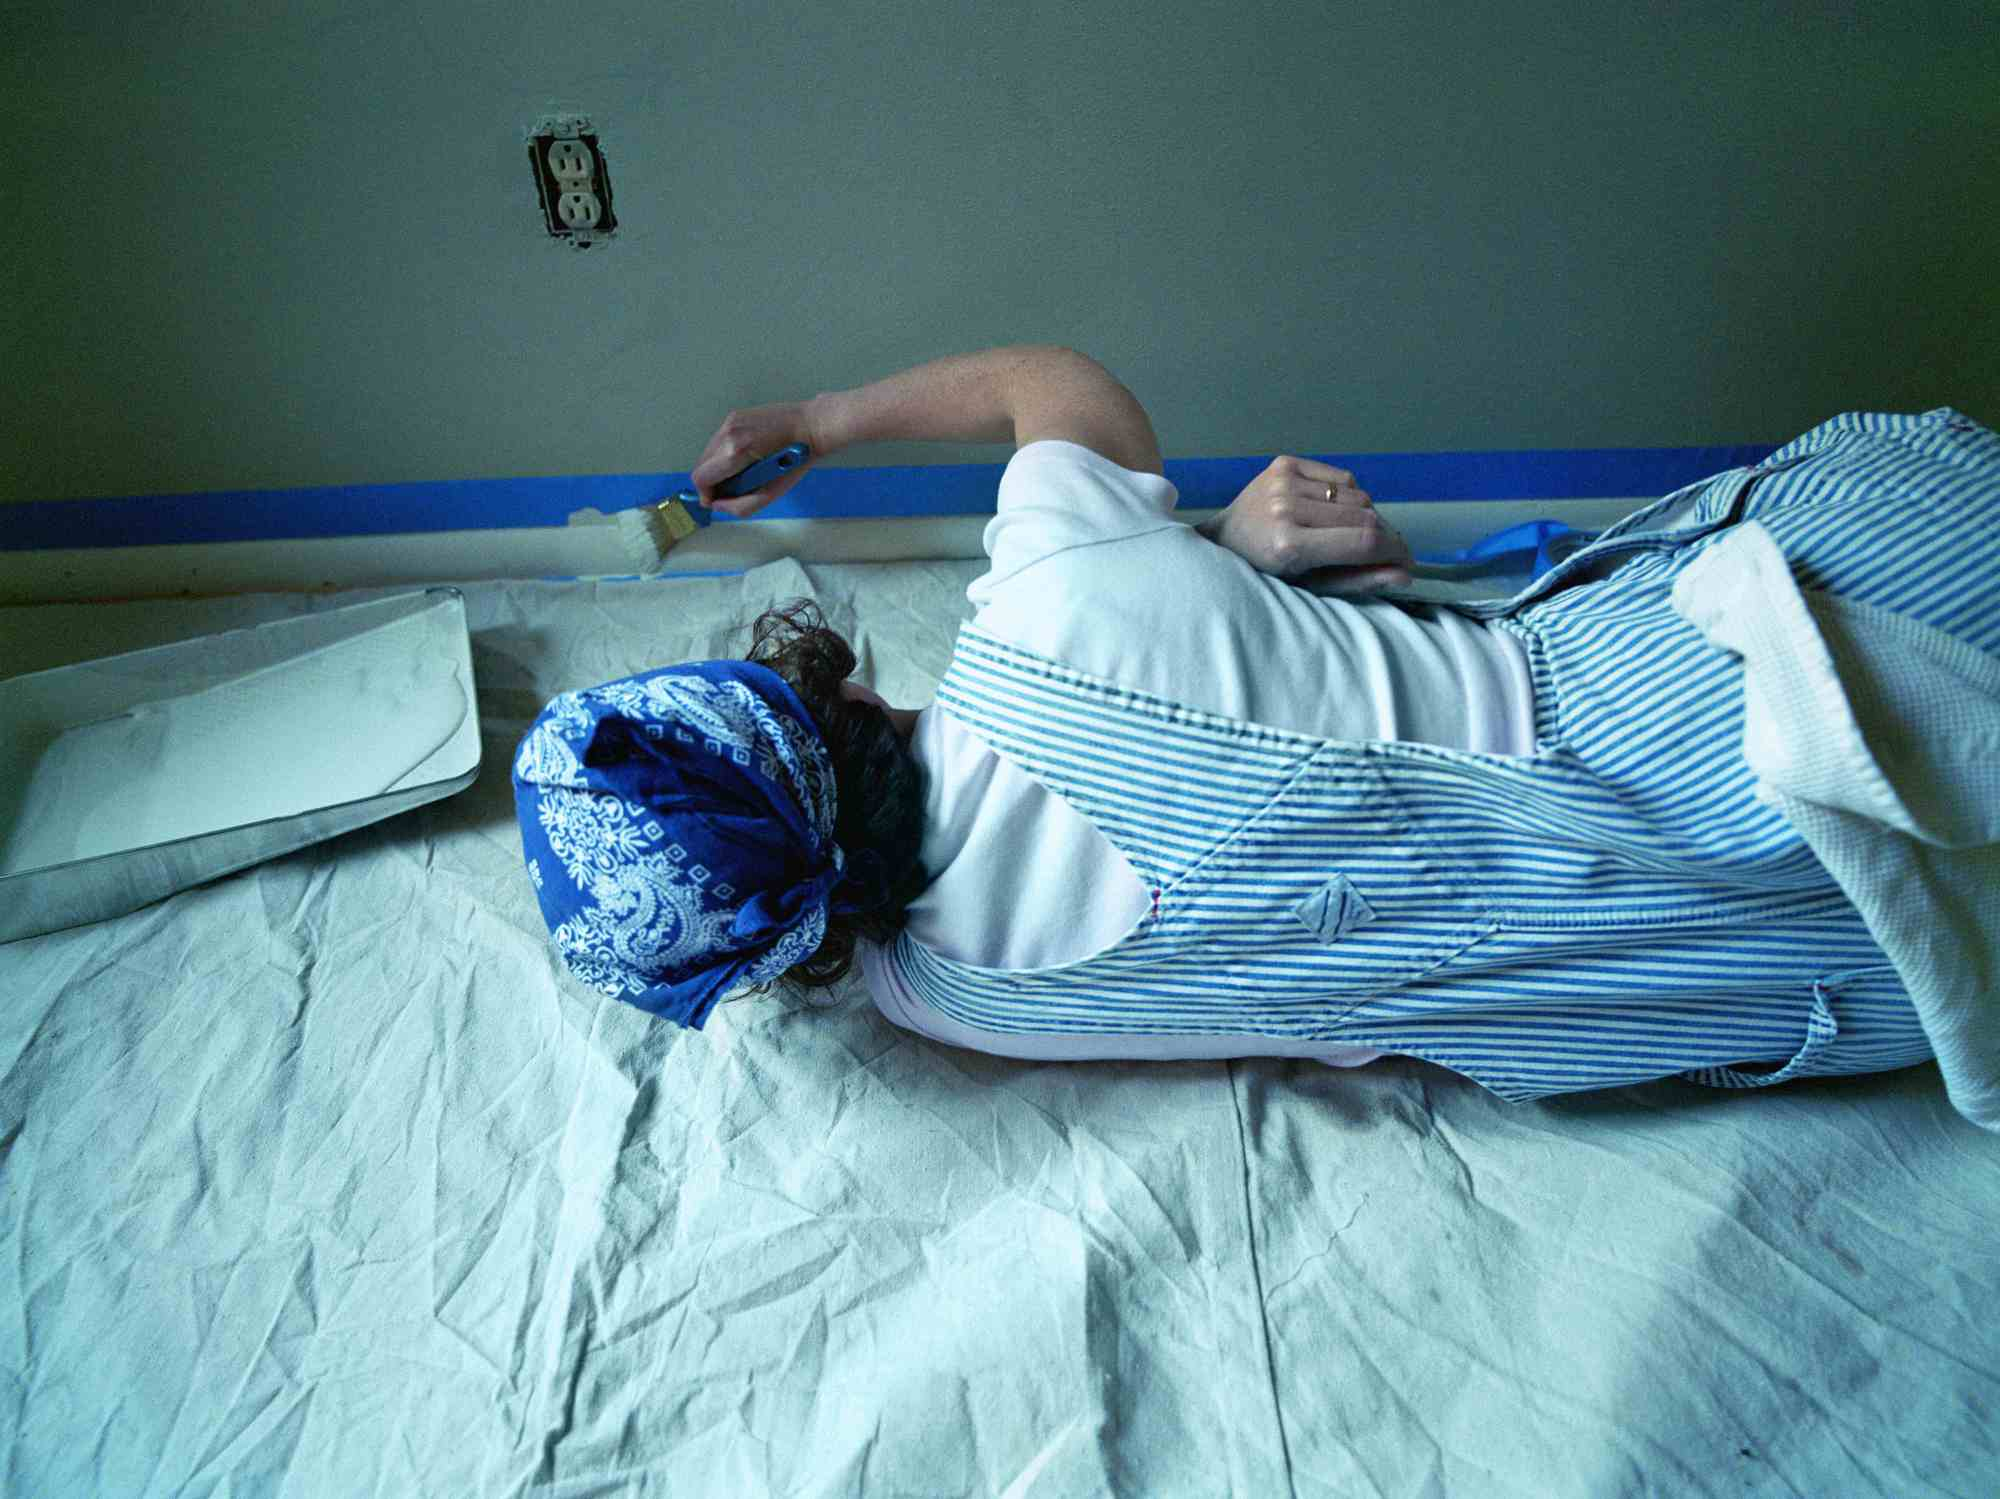 Woman lying on floor, painting wall trim, rear view